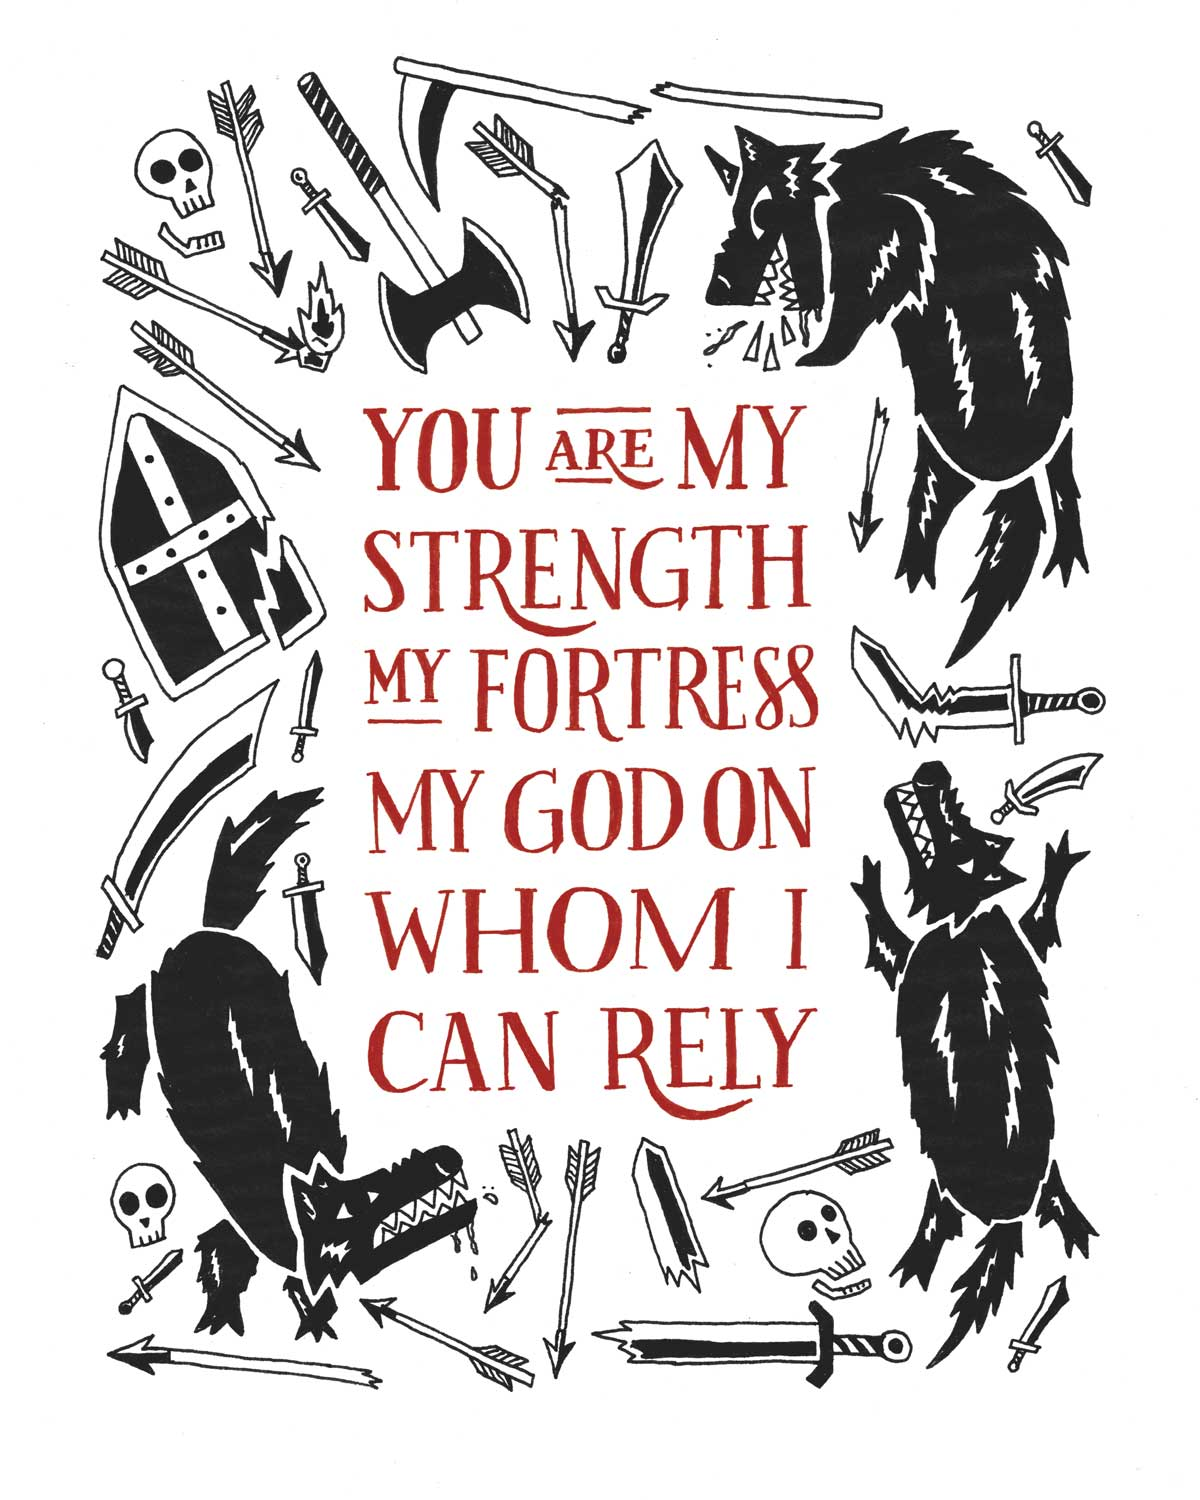 Psalm 59. You are my strength, my fortress, my God on whom I can rely. Illustration of dogs and weapons of war surrounding the lettering.